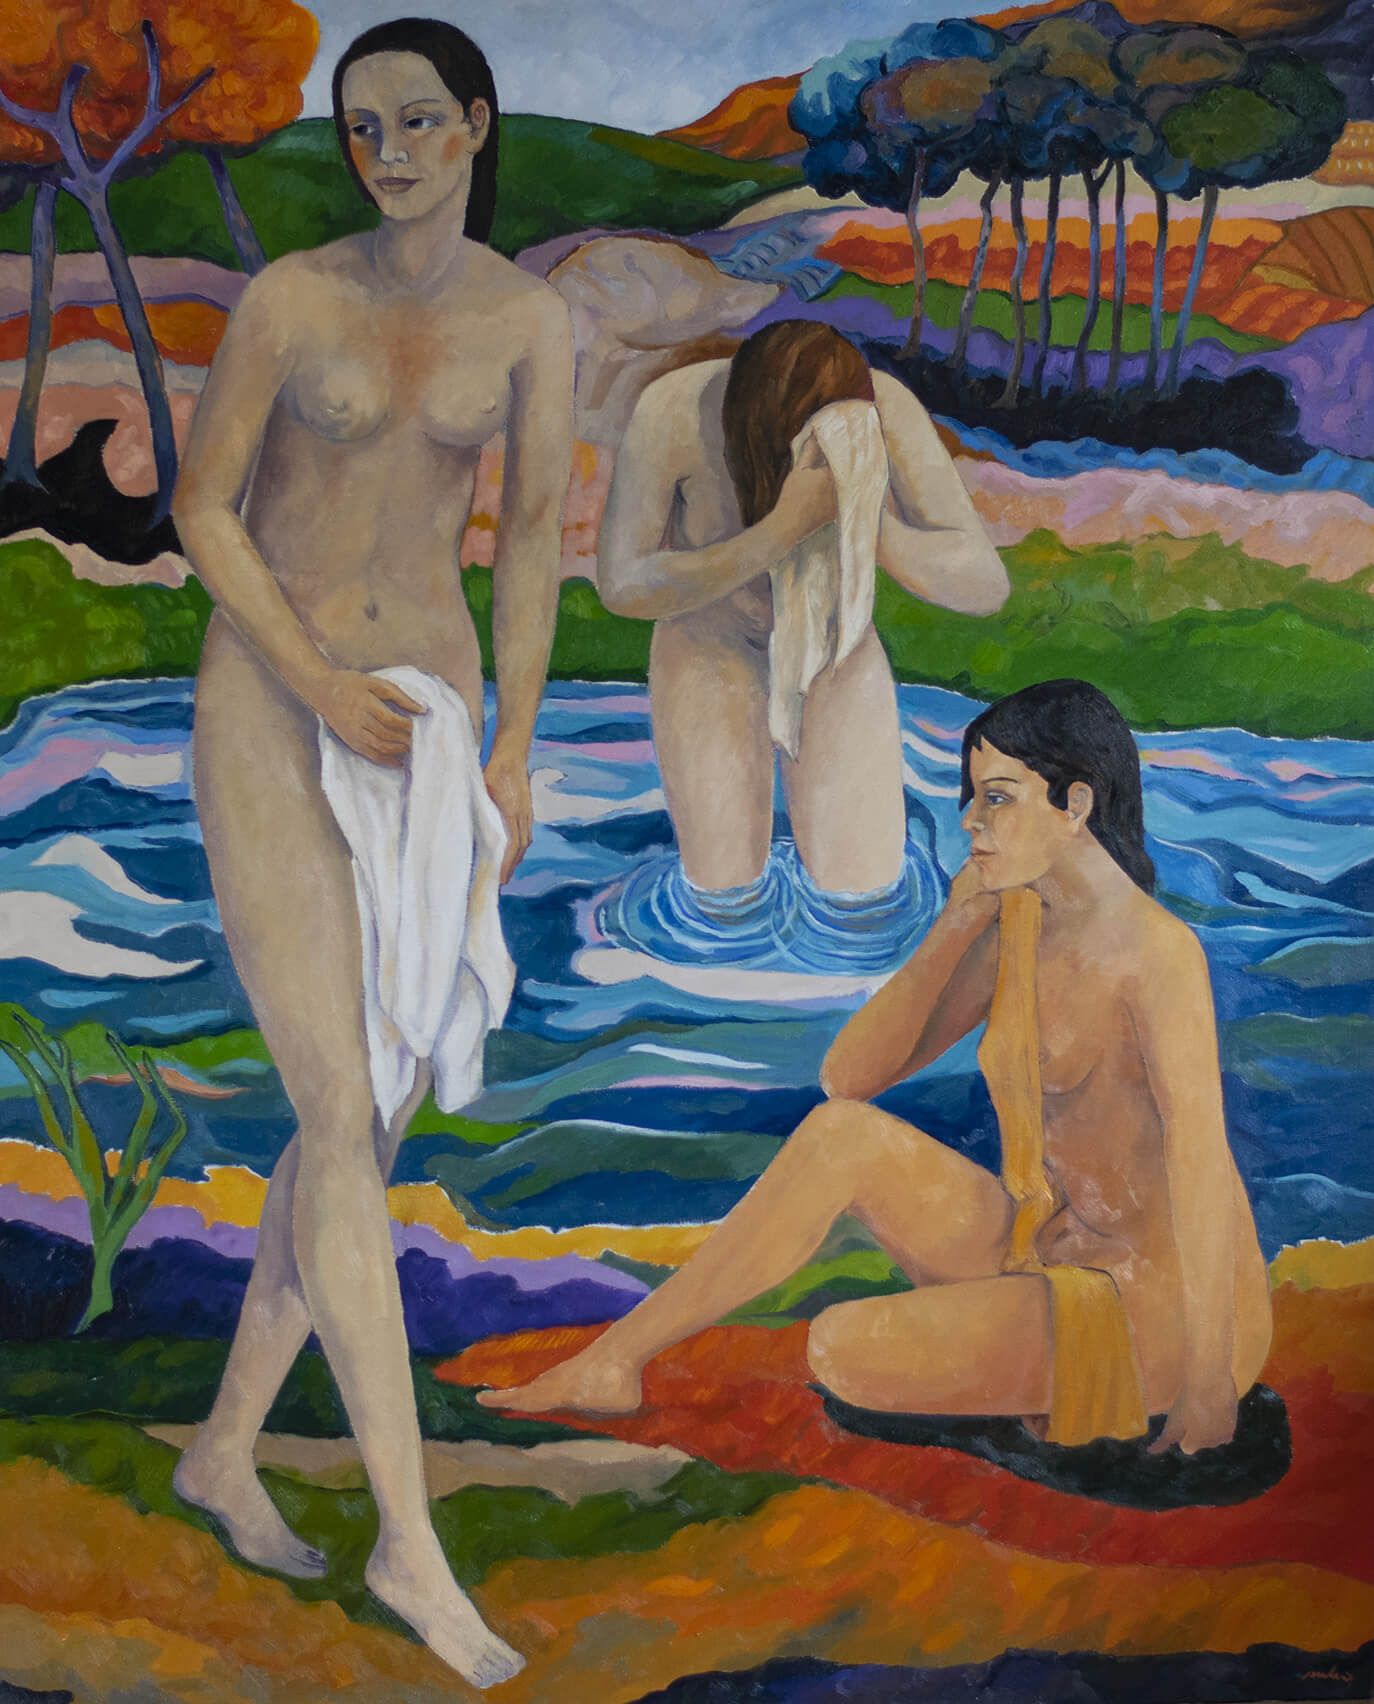 Le Tre Bagnanti, Three Bathers